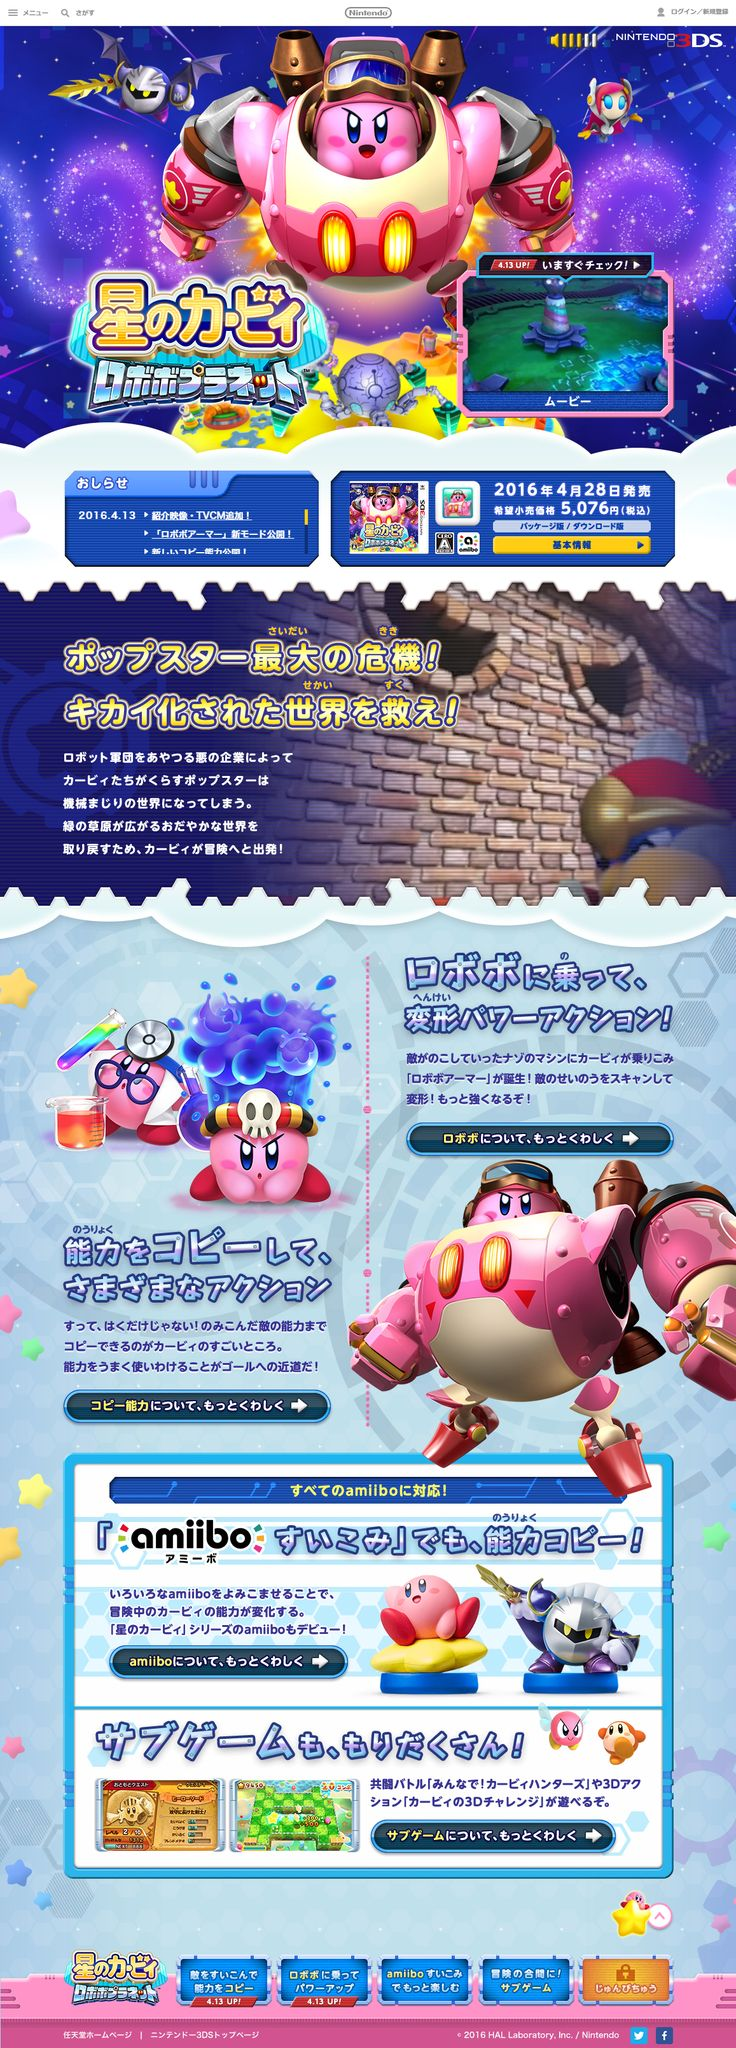 https://www.nintendo.co.jp/3ds/at3a/index.html